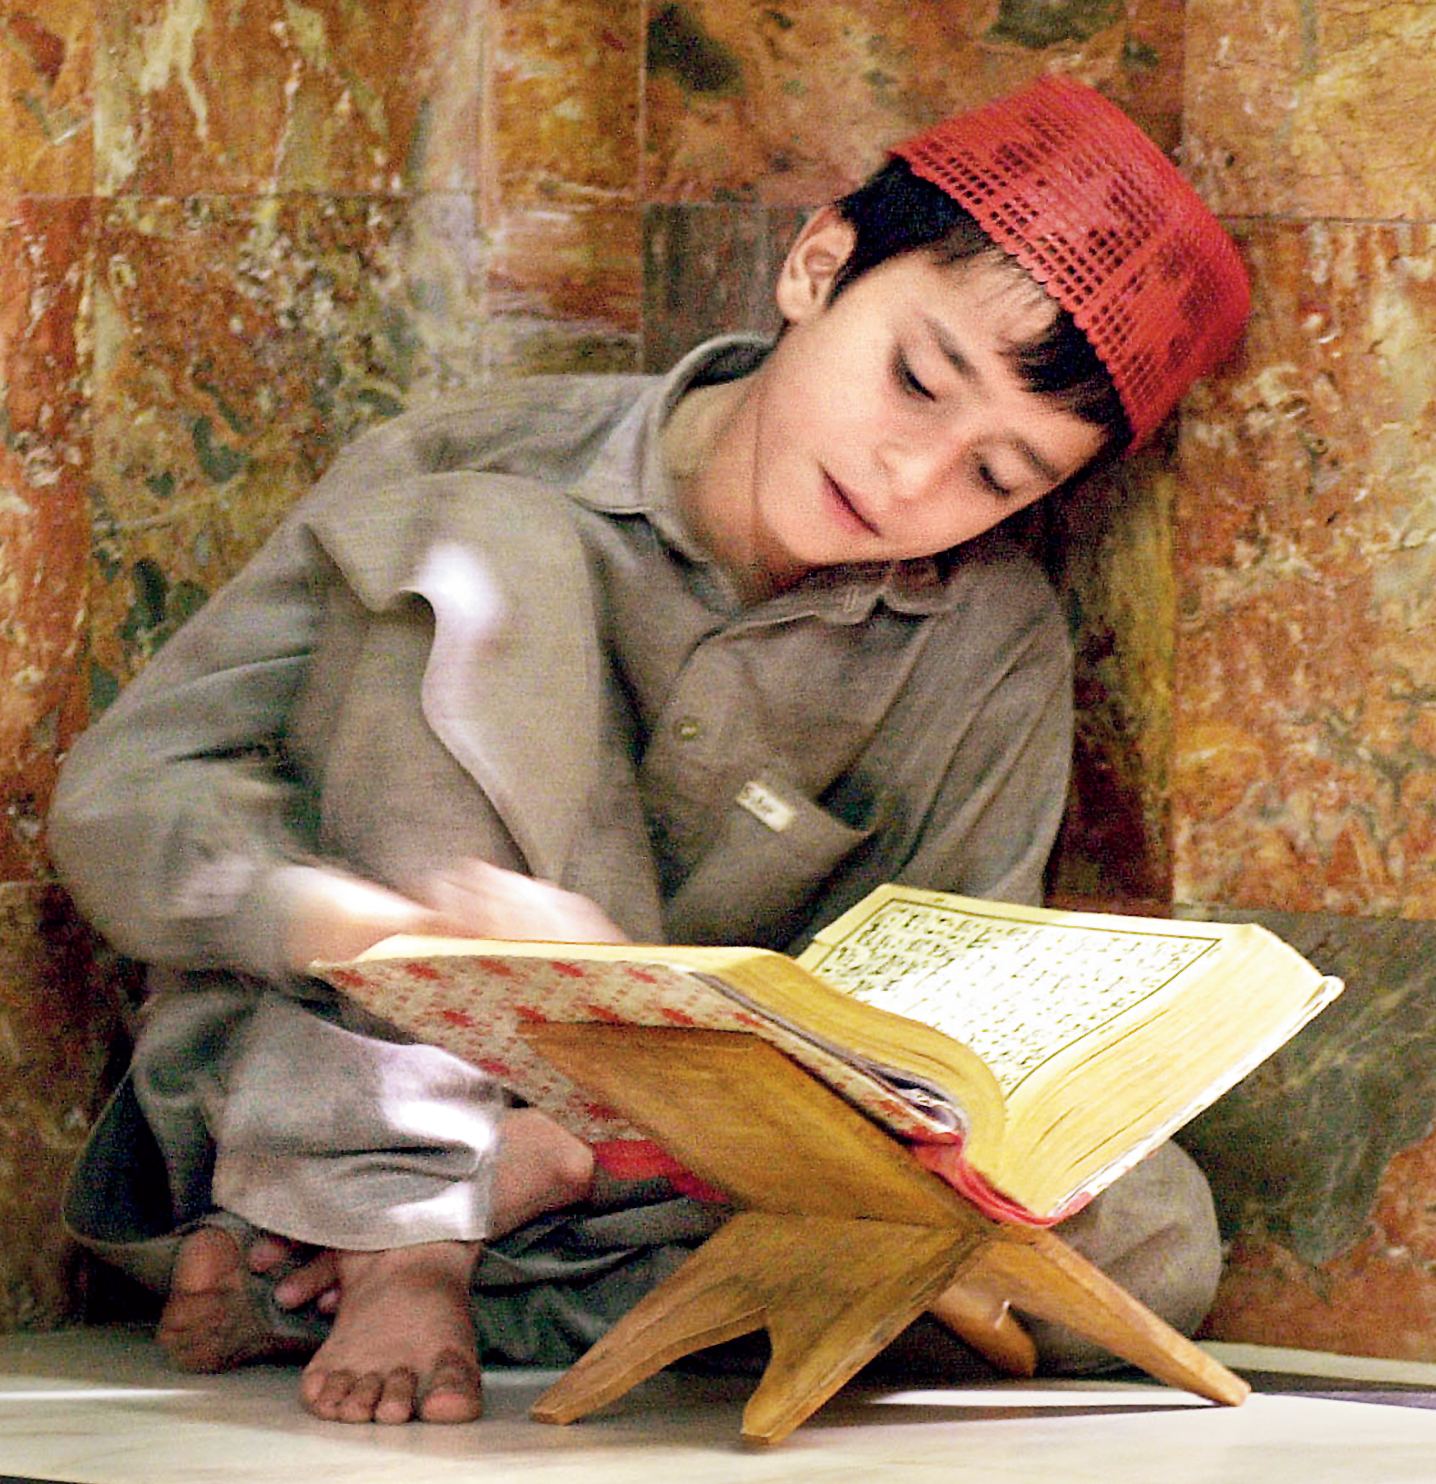 A boy in solitary study of the Koran at the Mohabat Khan Mosque in Peshawar, Pakistan near the Afghanistan border